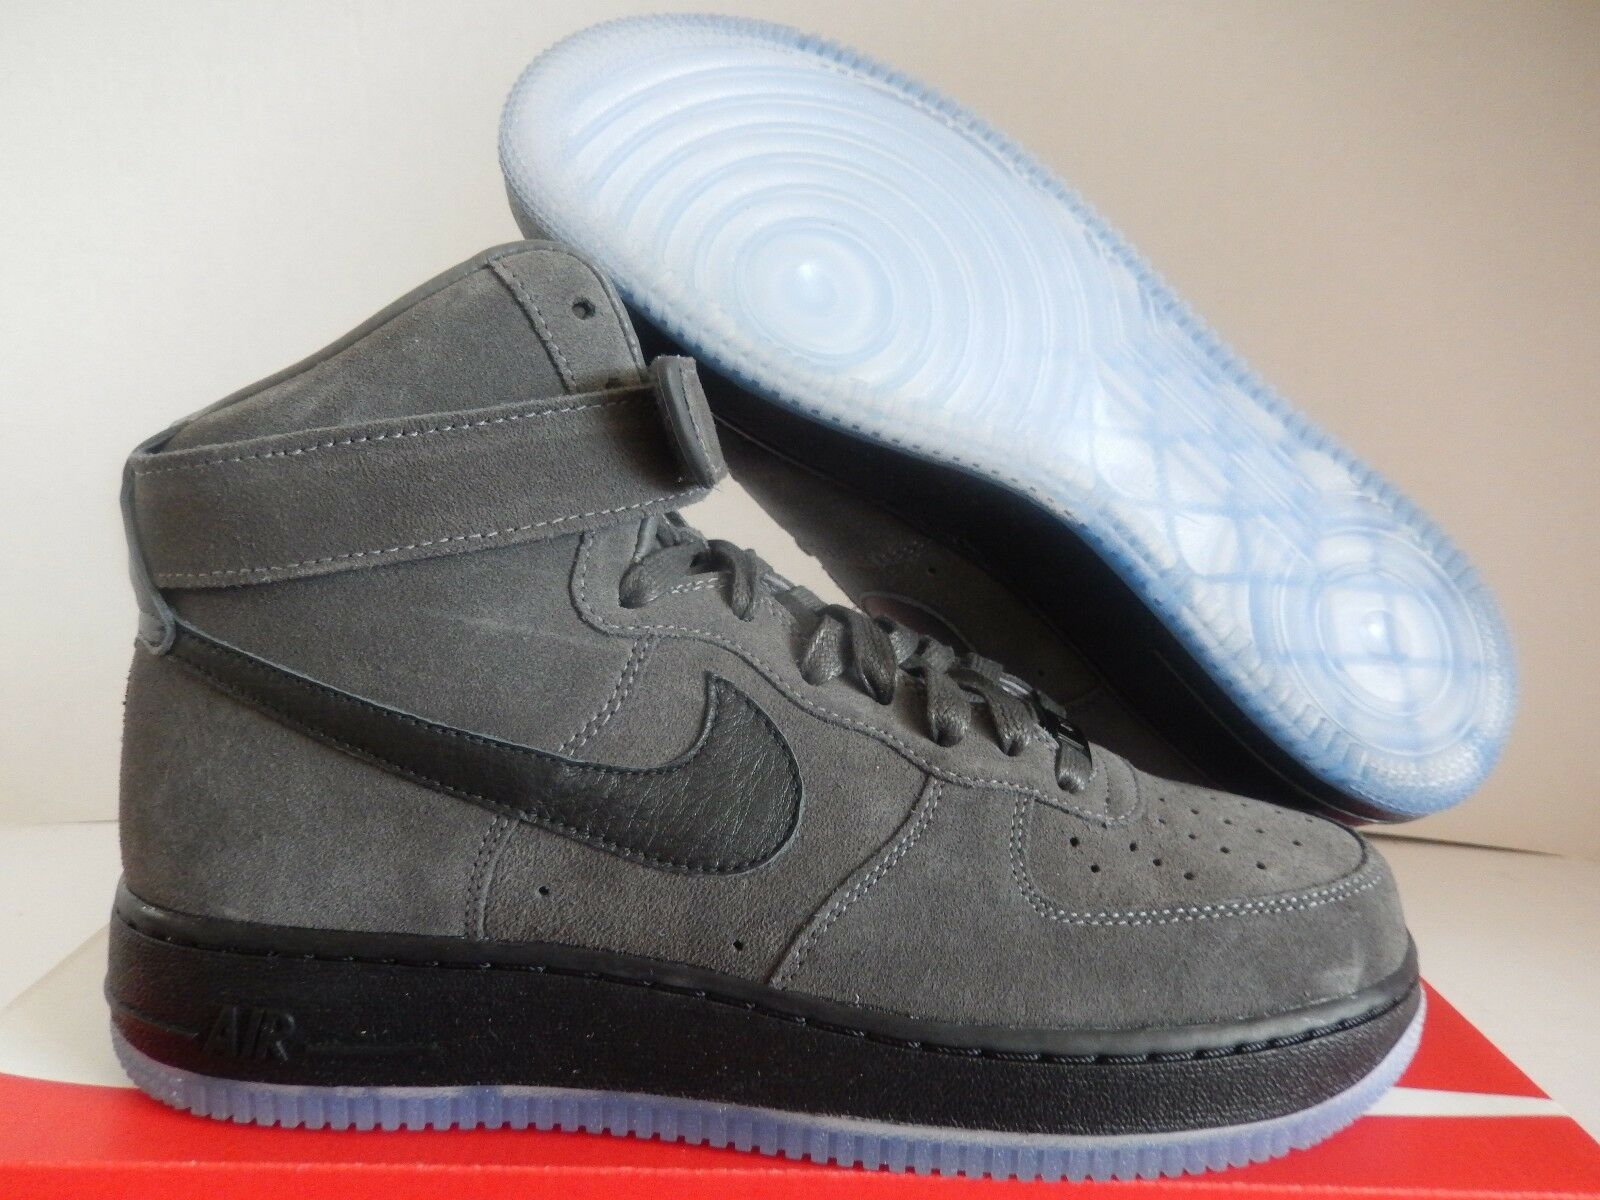 NIKE AIR FORCE 1 HIGH ID GREY-BLACK-CLEAR Price reduction The latest discount shoes for men and women